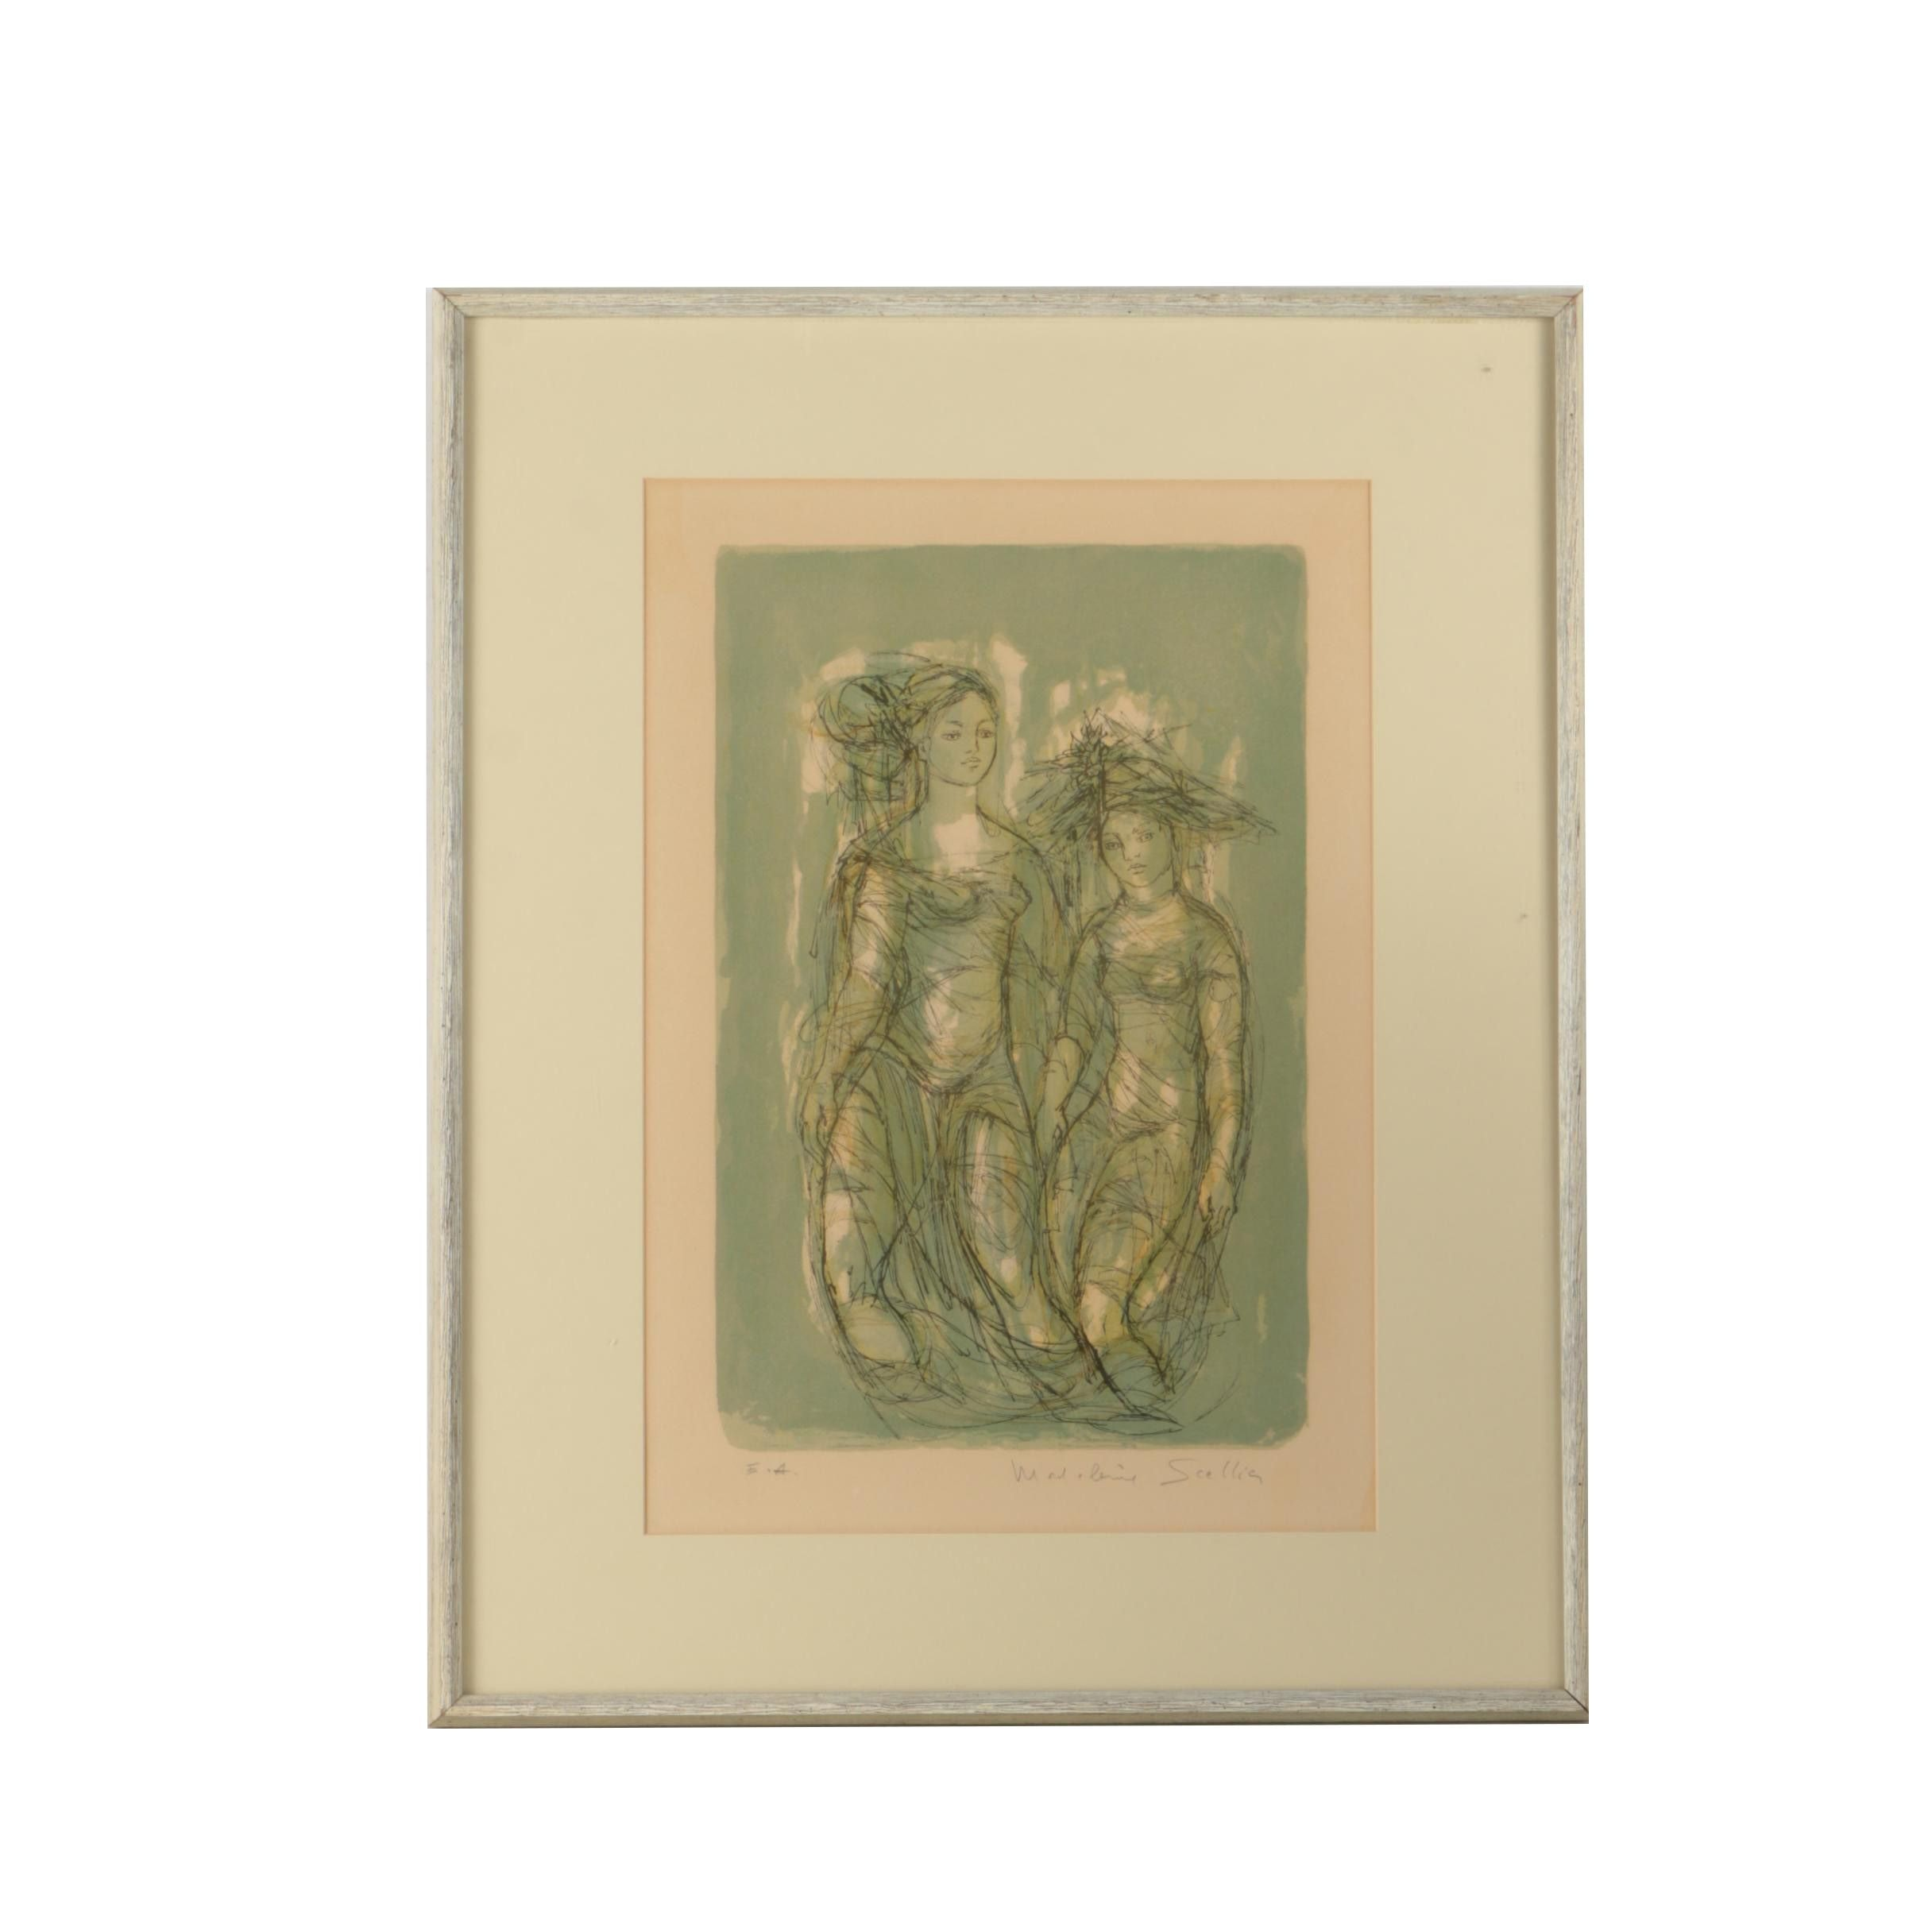 Madeline Scellia Artist Proof Hand Colored Lithograph of Women